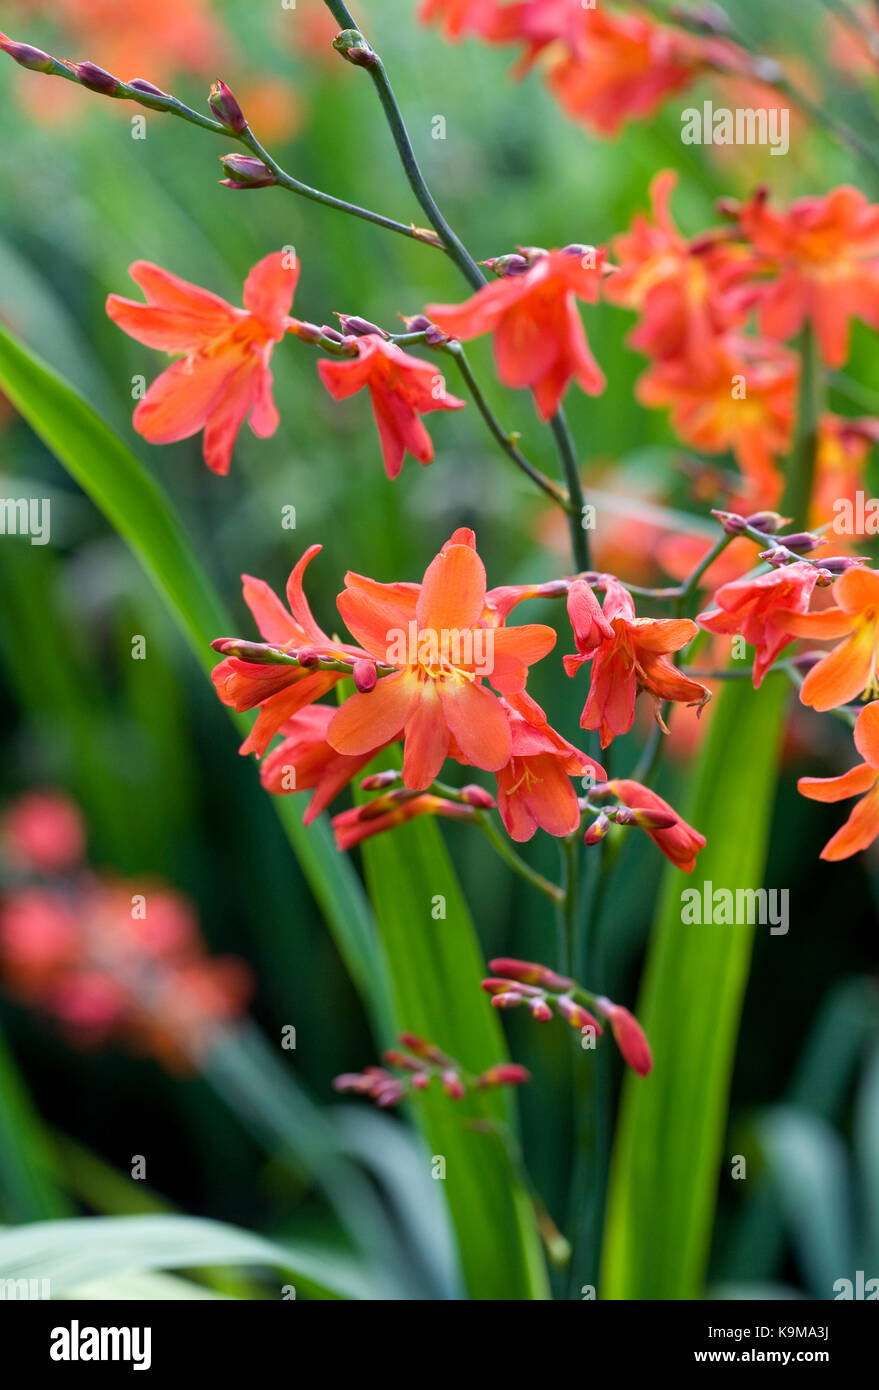 Crocosmia 'Lucifer' flowers. Stock Photo